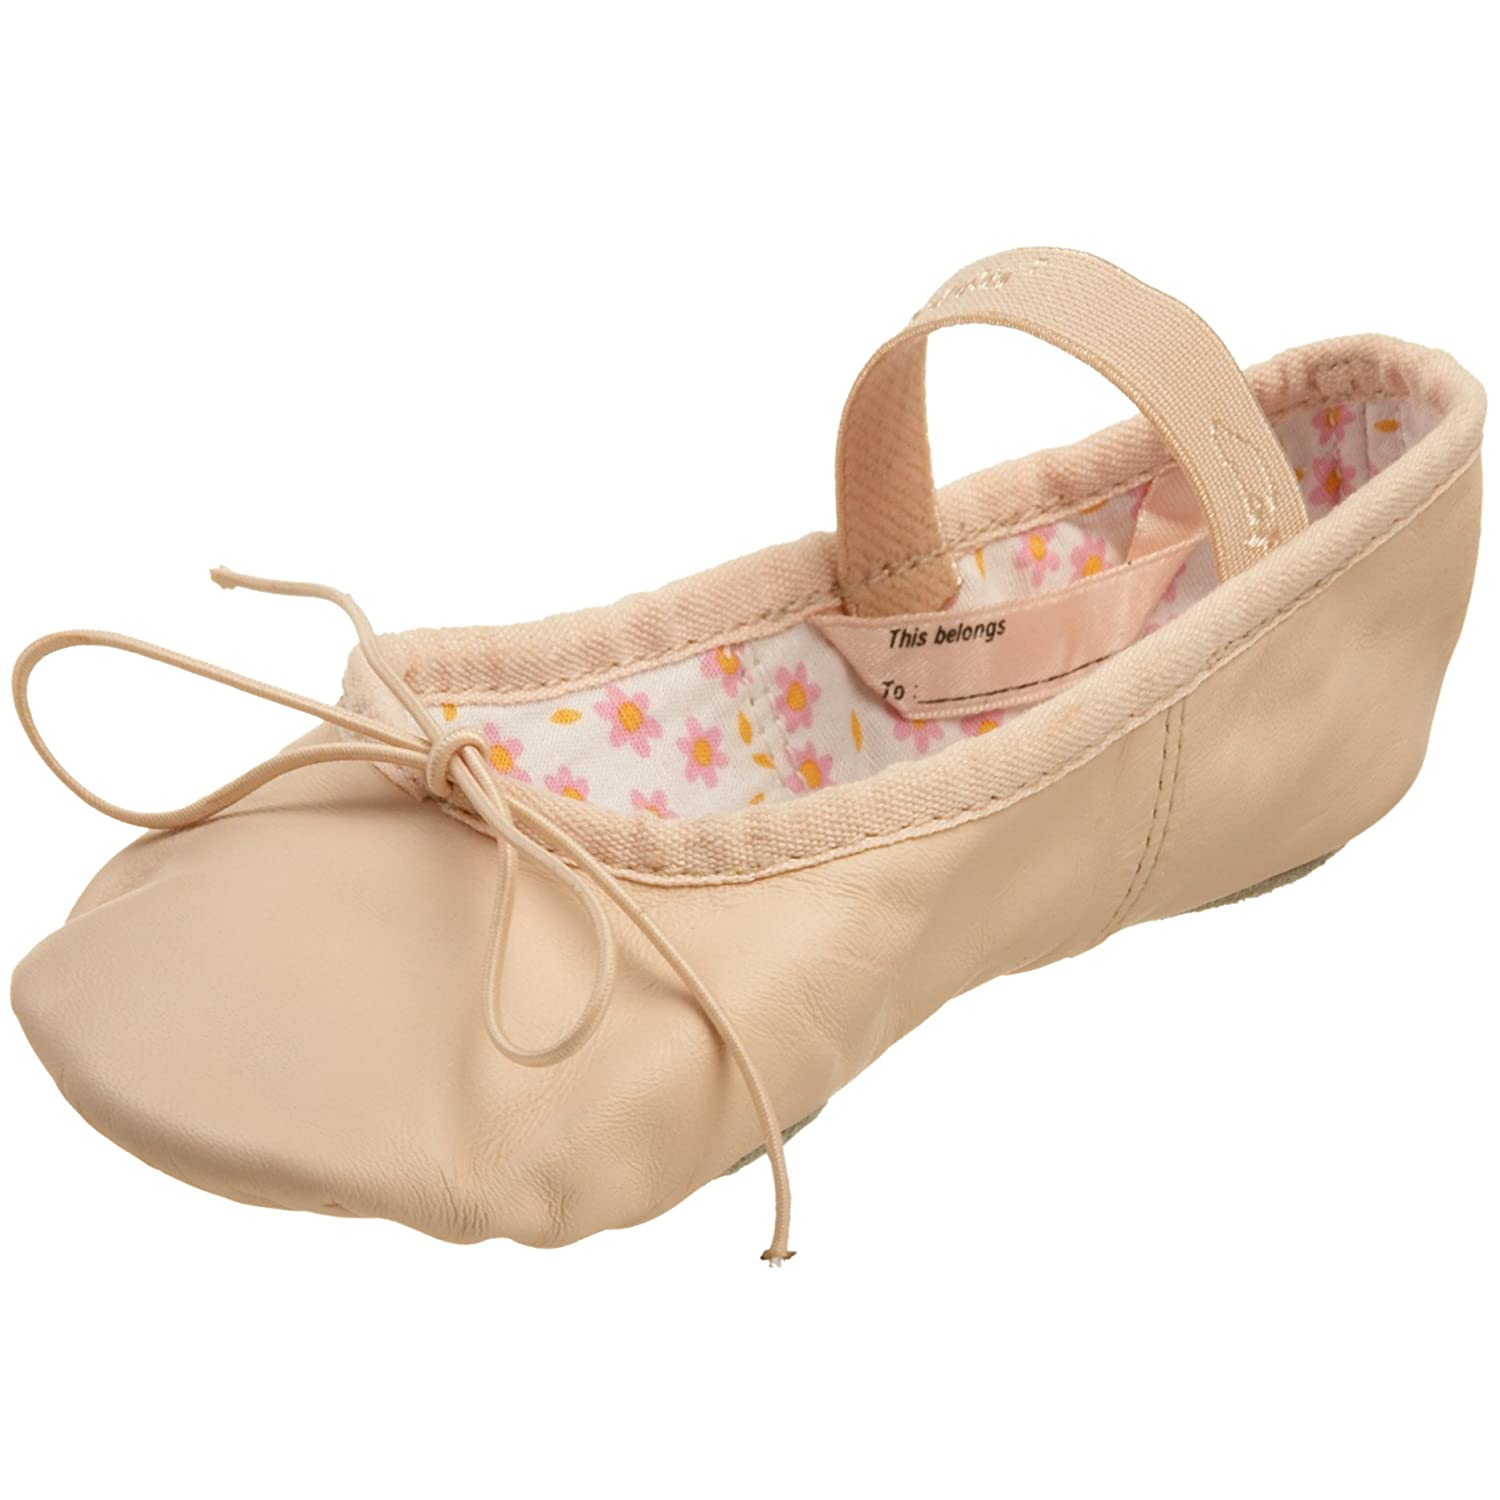 71TTuoDHohL. UL1500  Top Result 52 Lovely Portable Ballet Barre